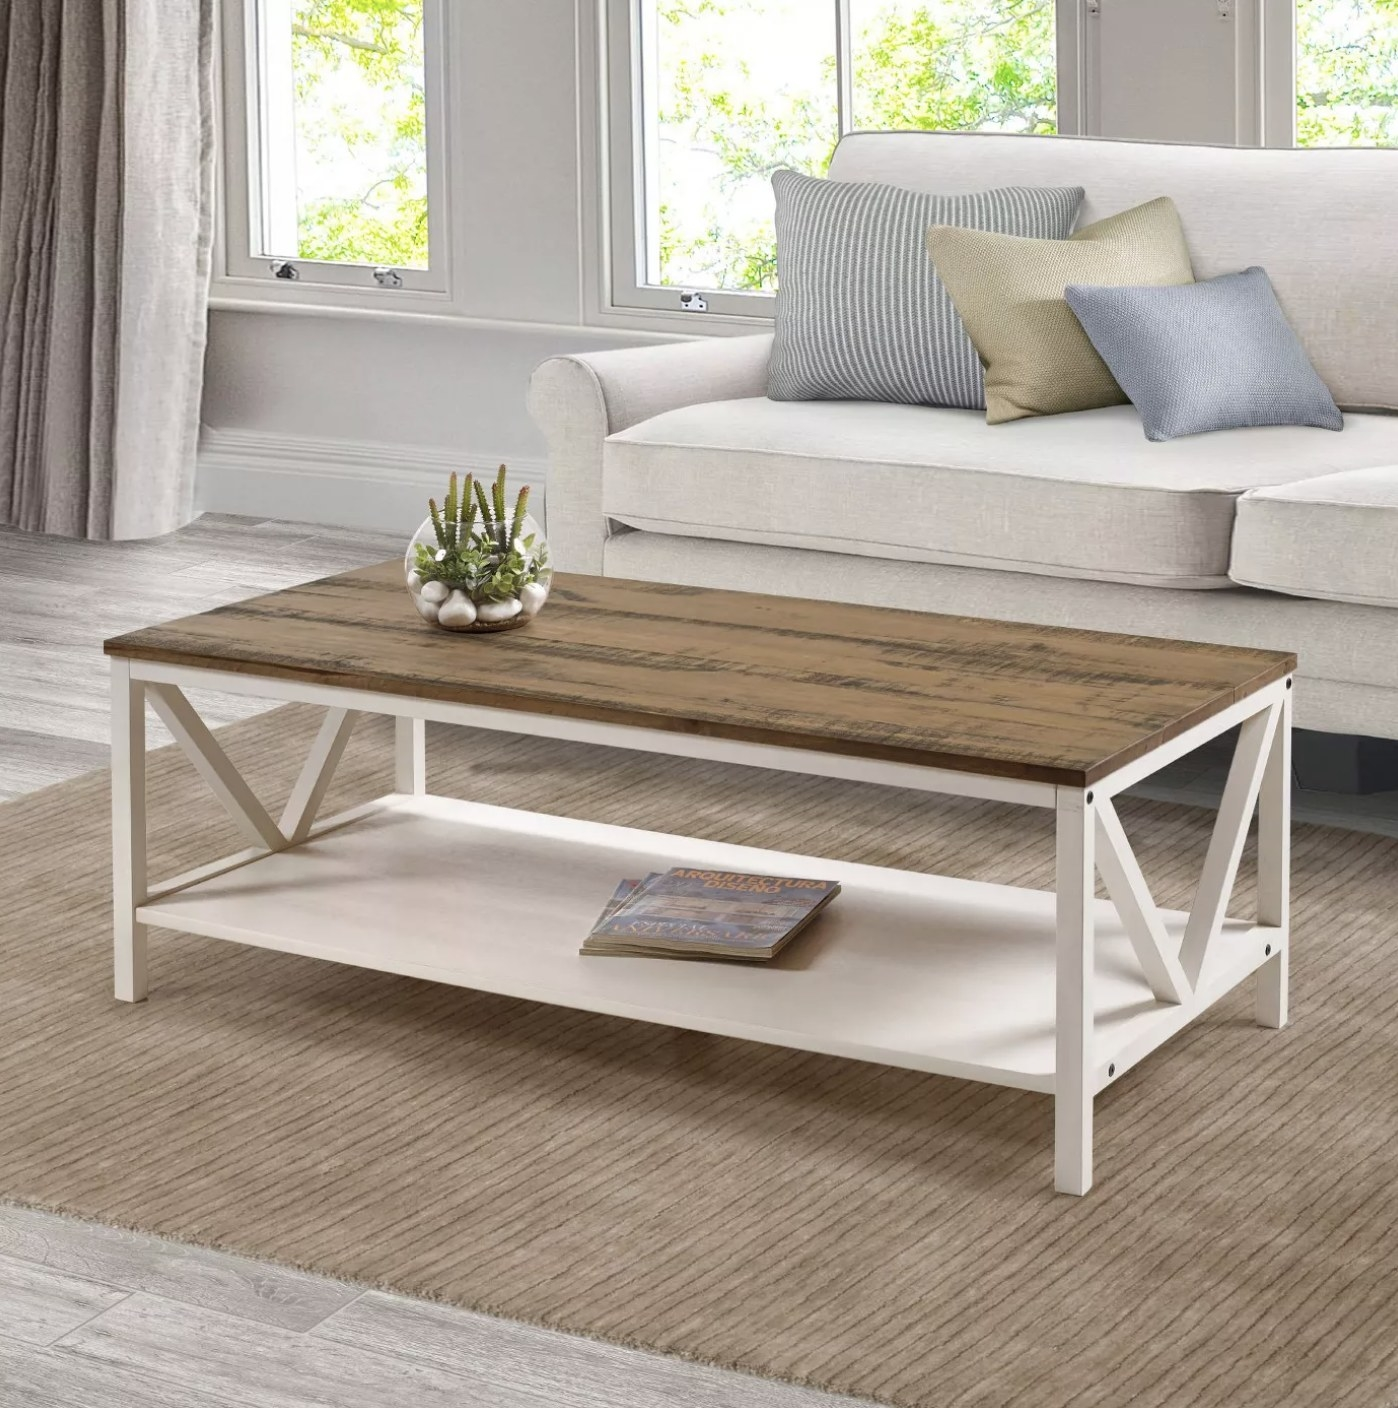 The wood coffee table with cream legs